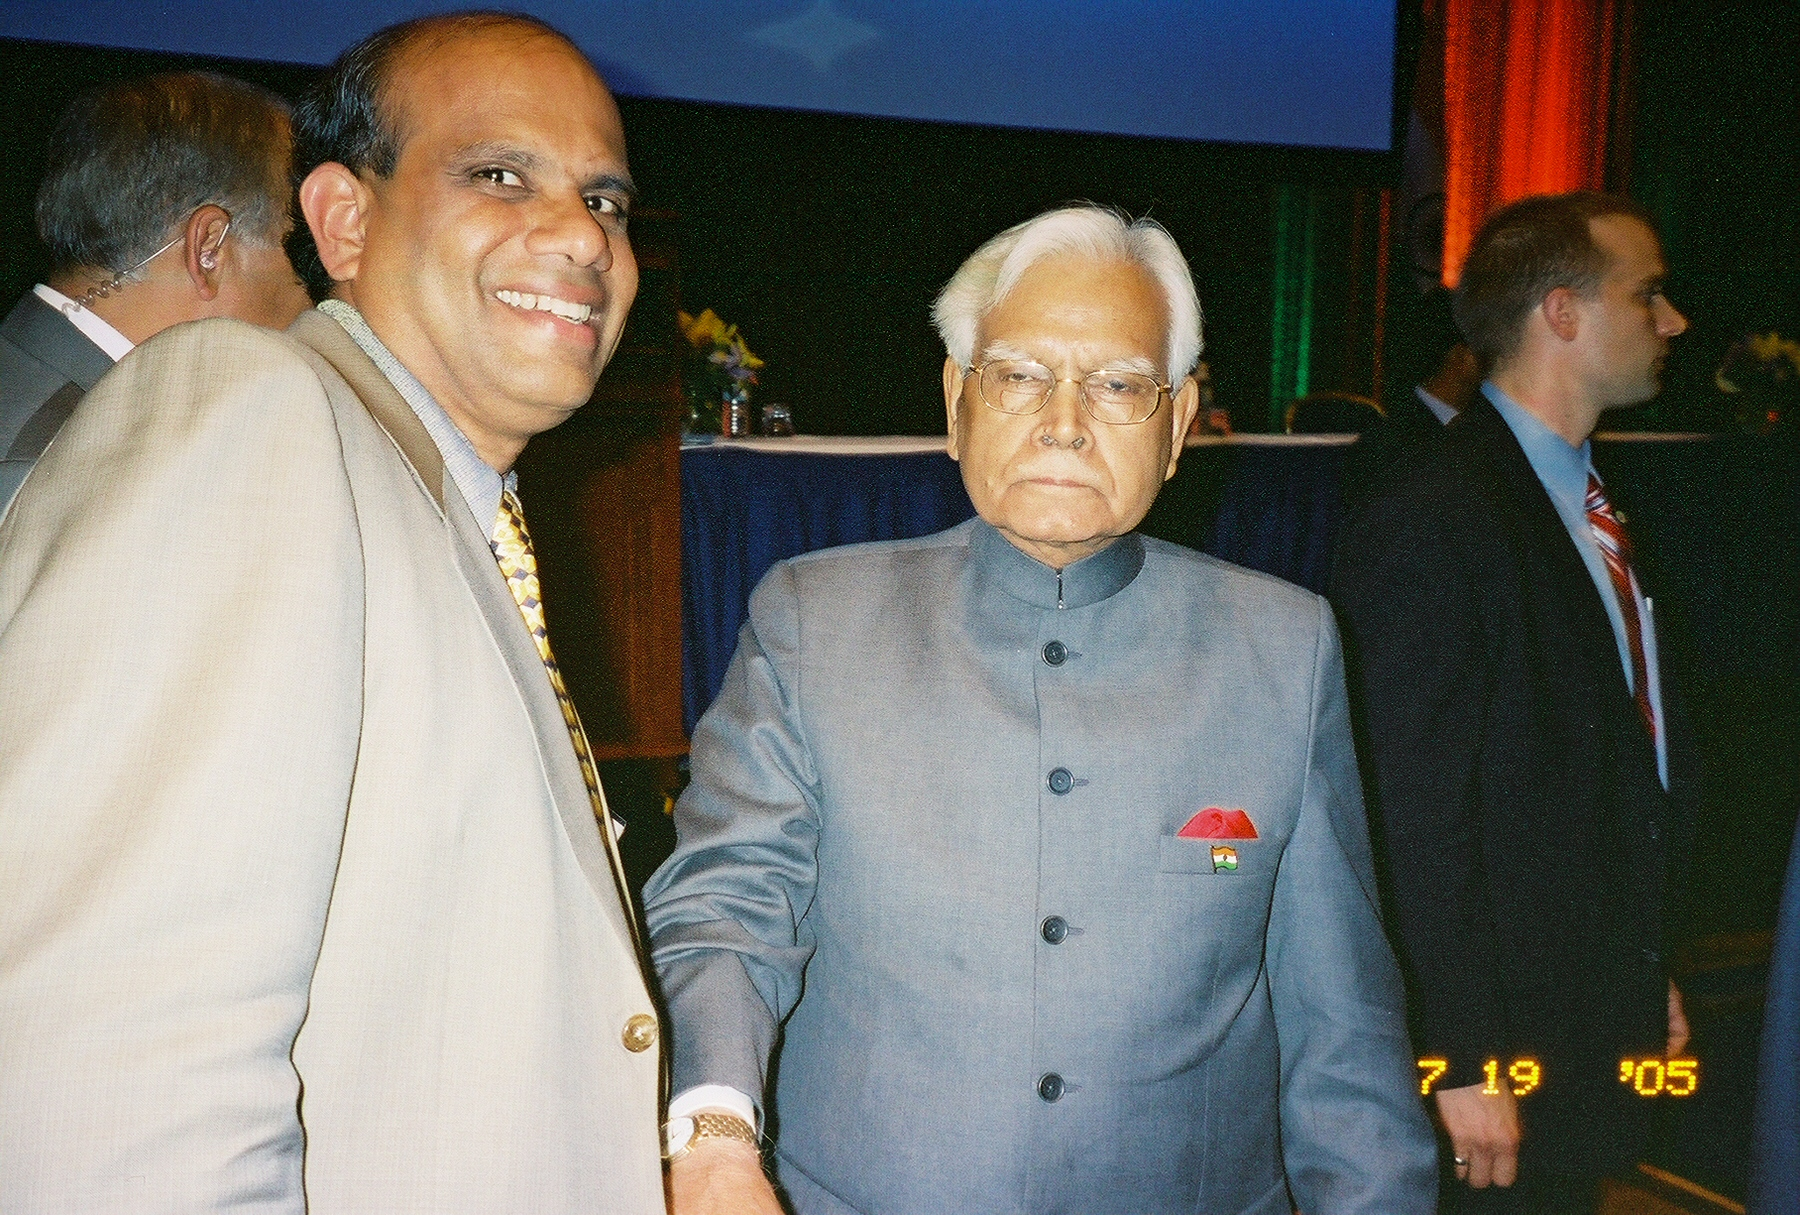 Dr. Gurumurthy Kalyanaram with Honorable Natwar Singh.jpg